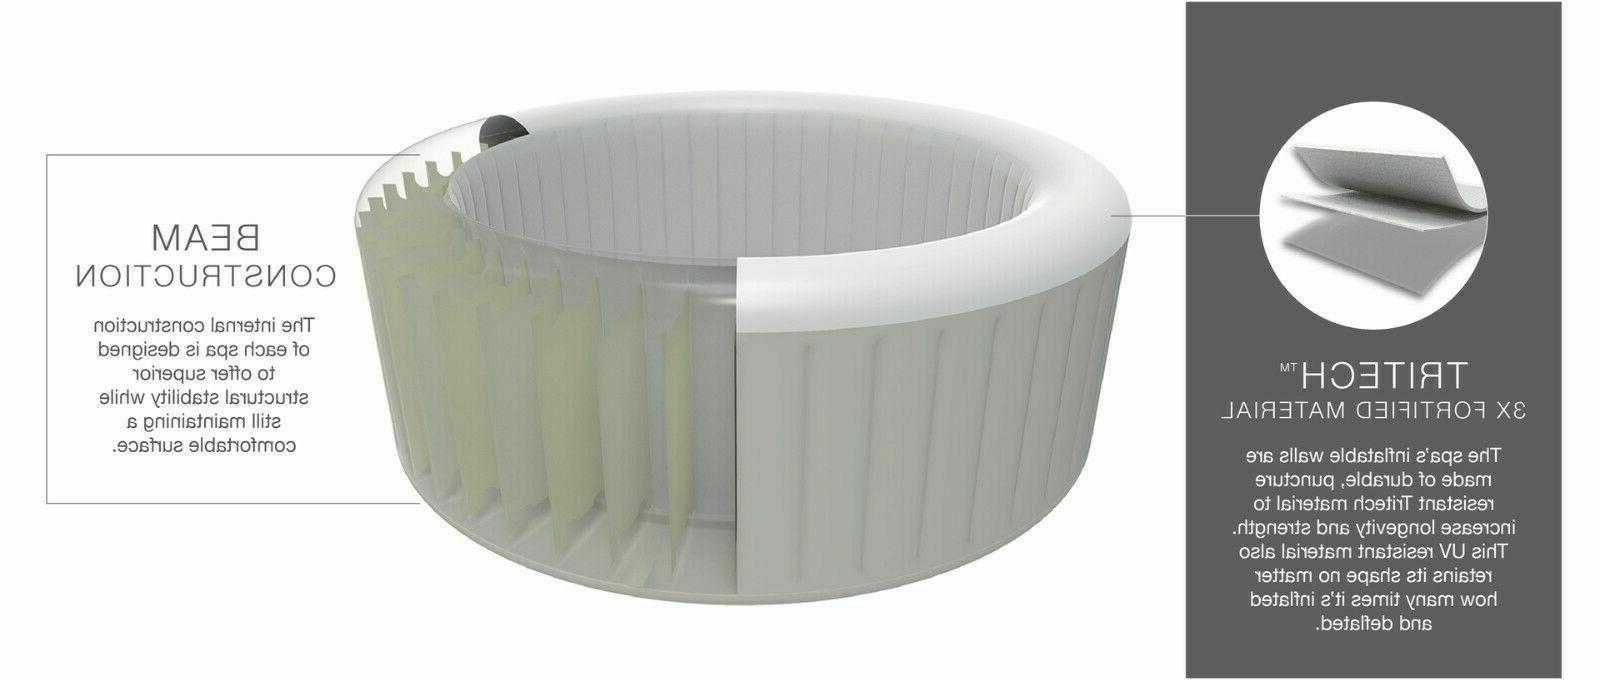 ✅NEW ✅Coleman 71 x 26 inch Airjet Tub - FREE SHIPPING